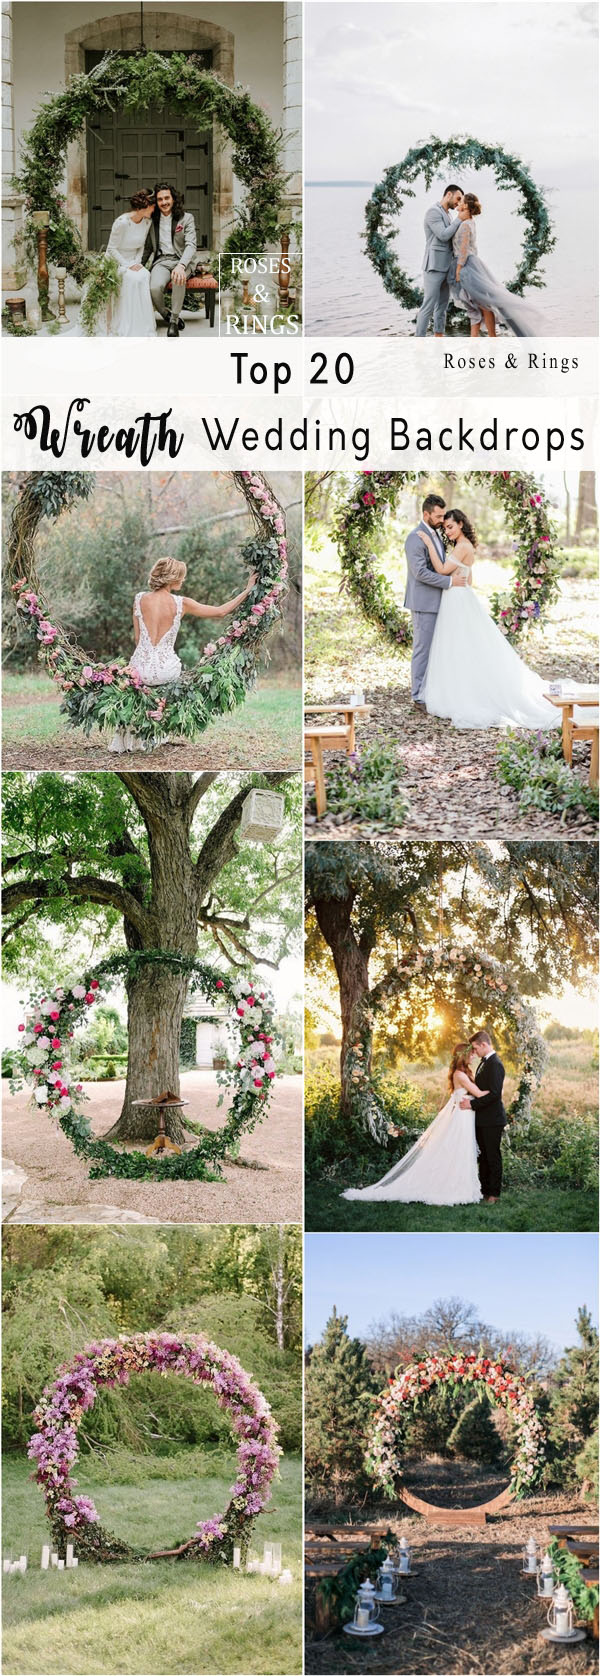 Top 20 Wreath & Circle Wedding Arches & Backdrops | Roses & Rings